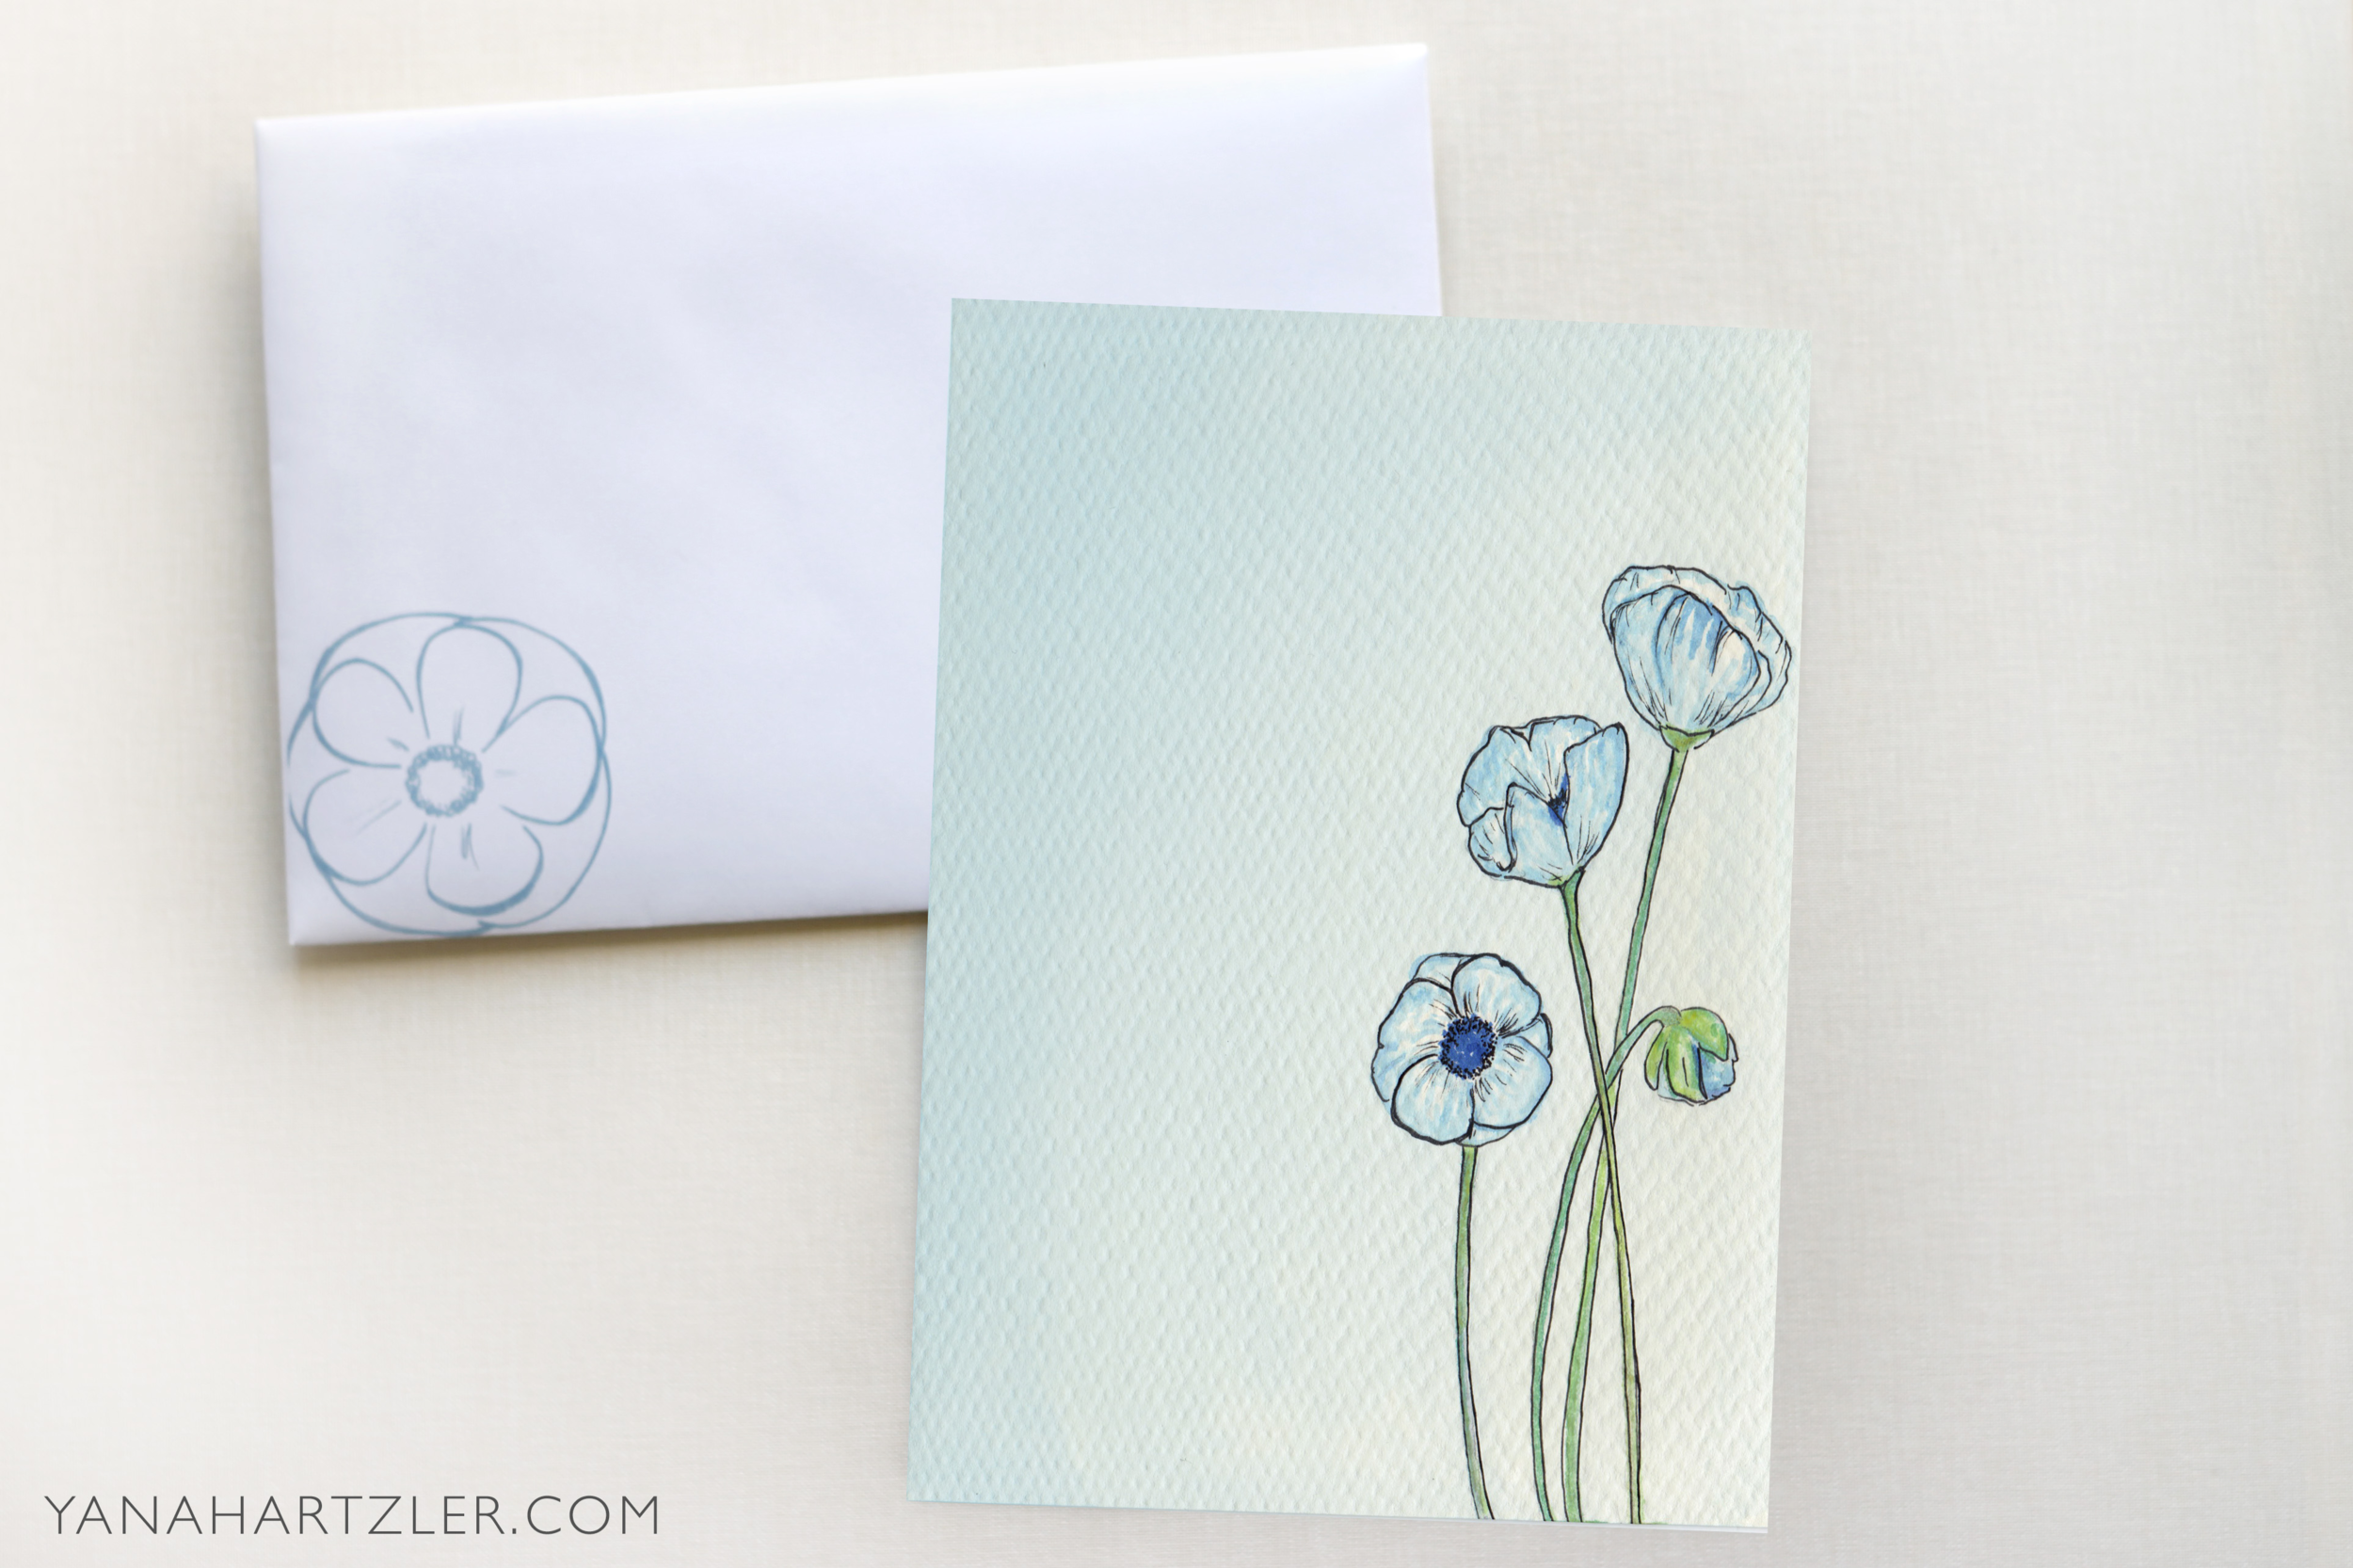 The front of the envelope and the back of the invitation.